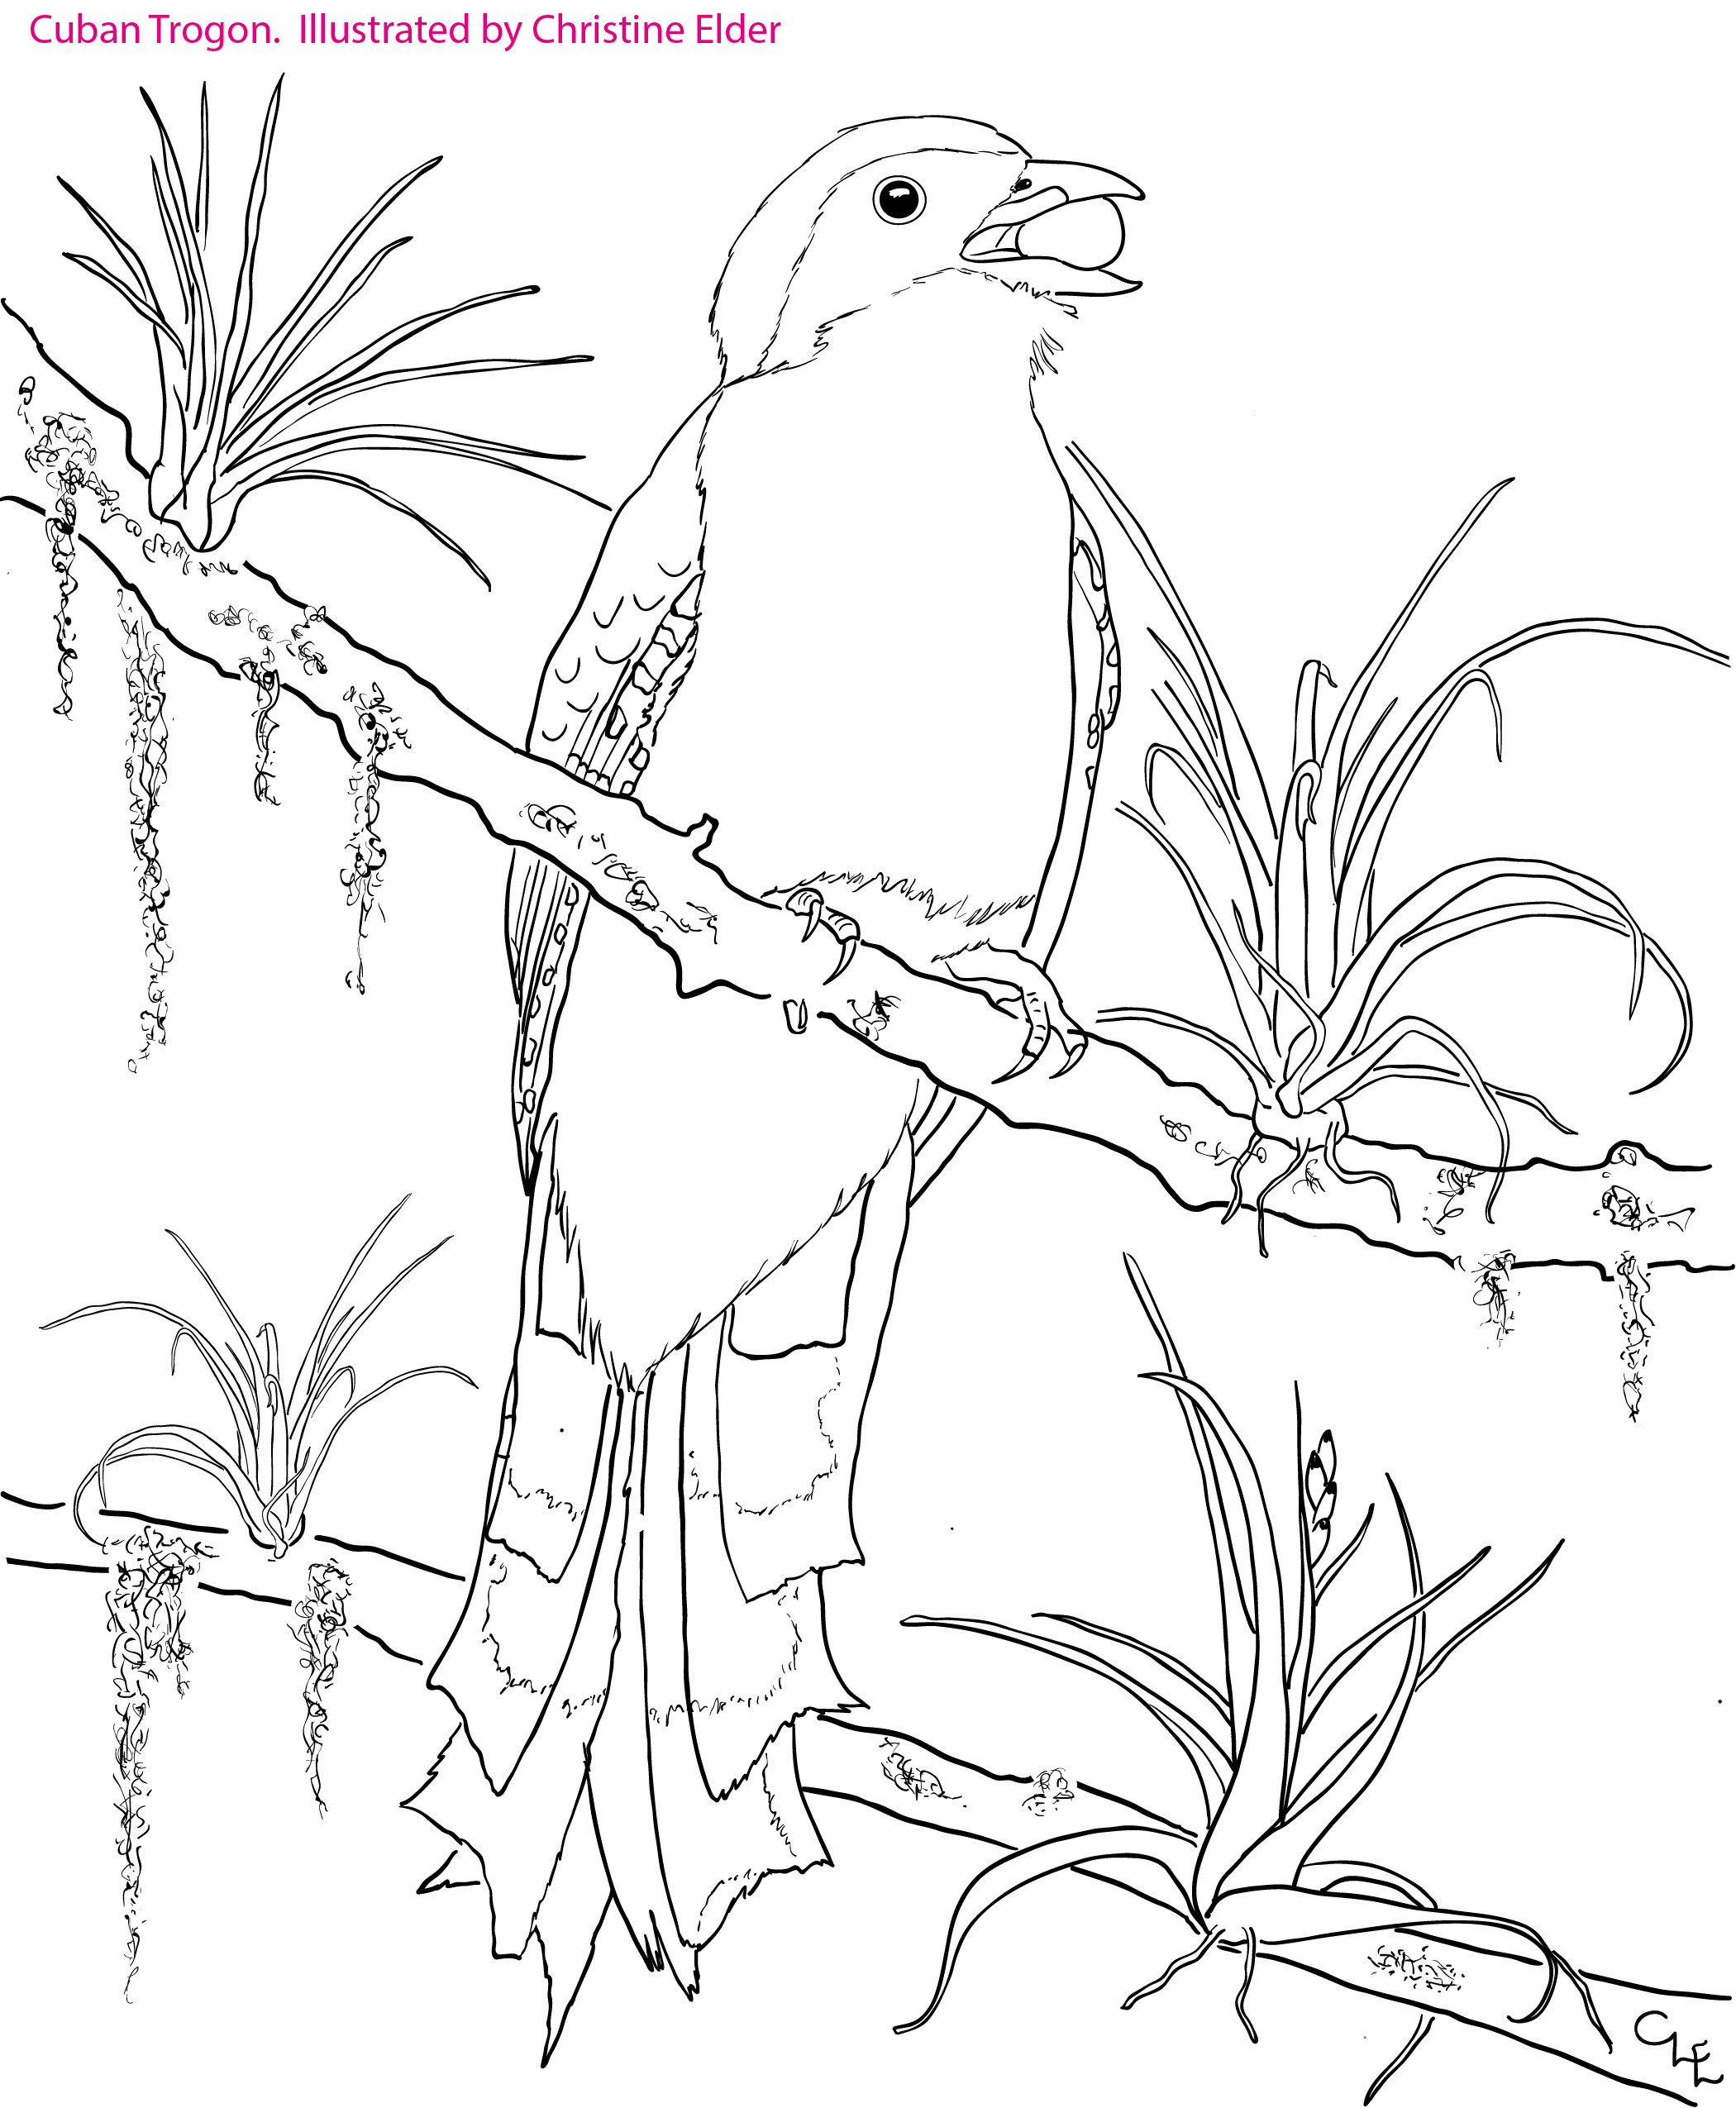 loon coloring pages Collection-Cuba Coloring Pages Cuba Coloring Pages 2-a